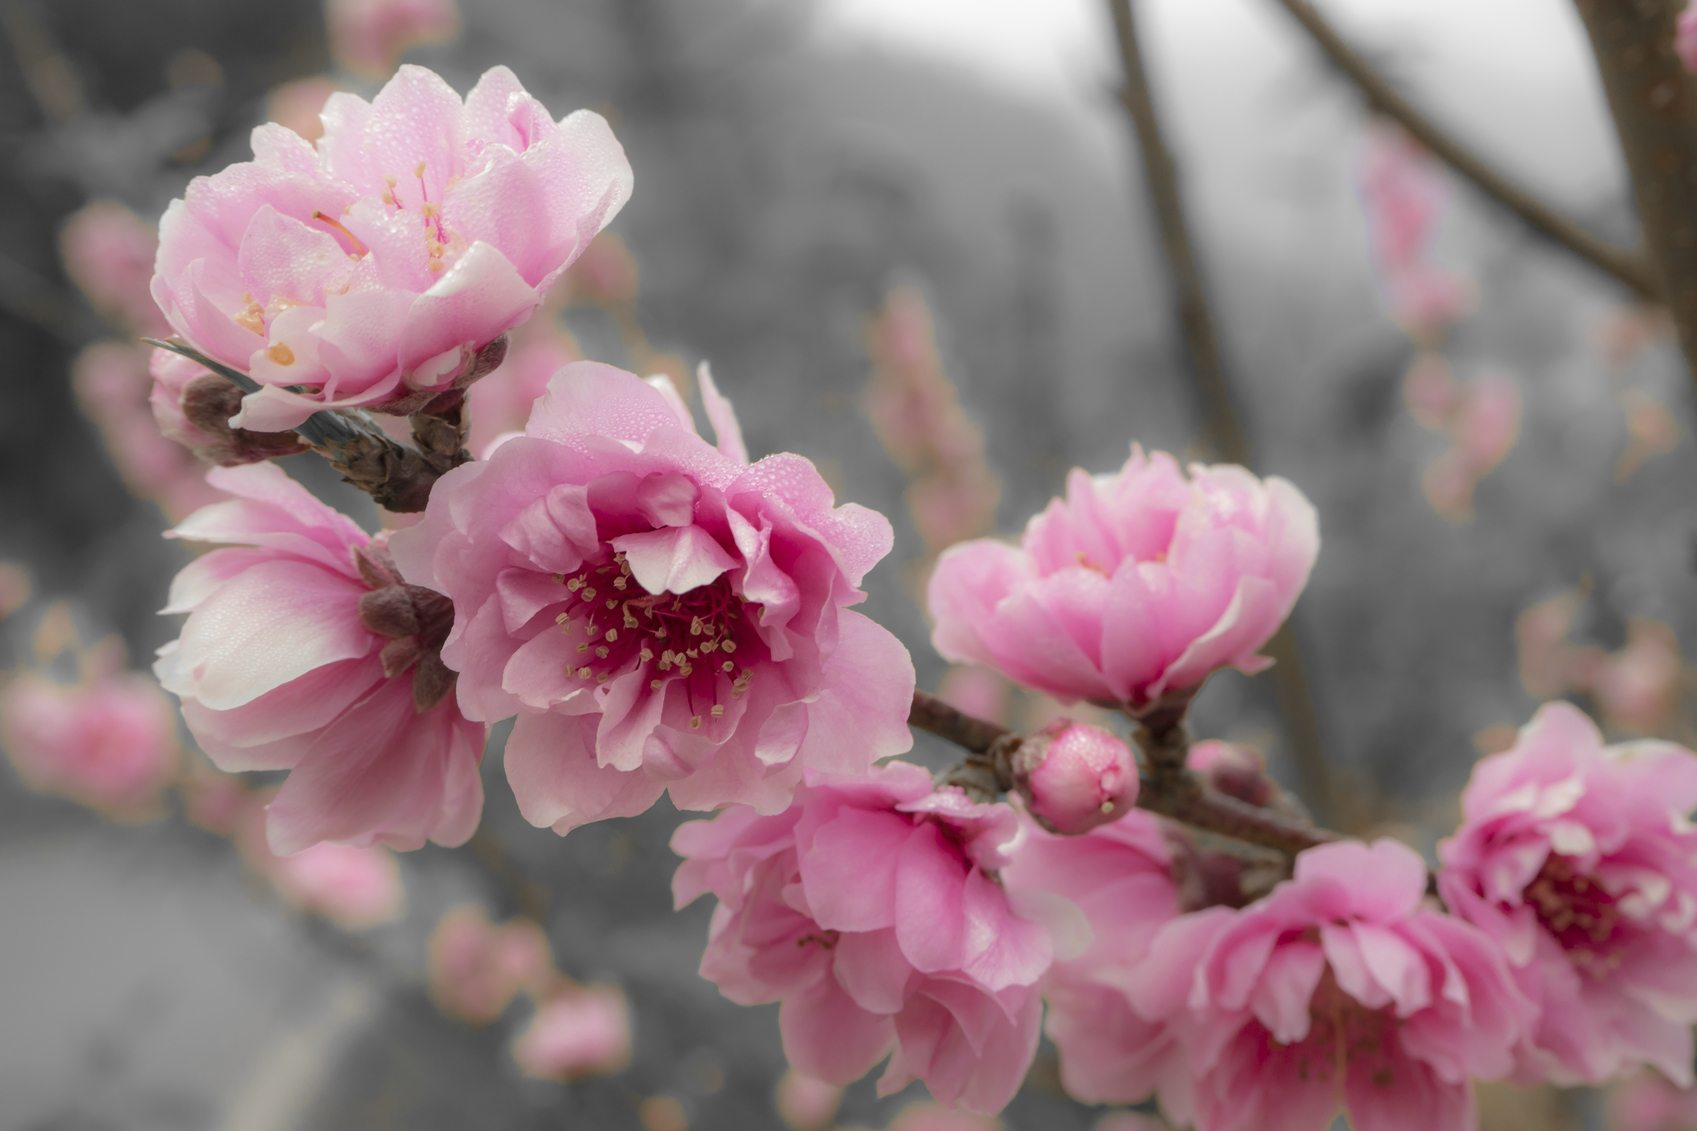 Ornamental Peach Trees Do Flowering Ornamental Peach Trees Bear